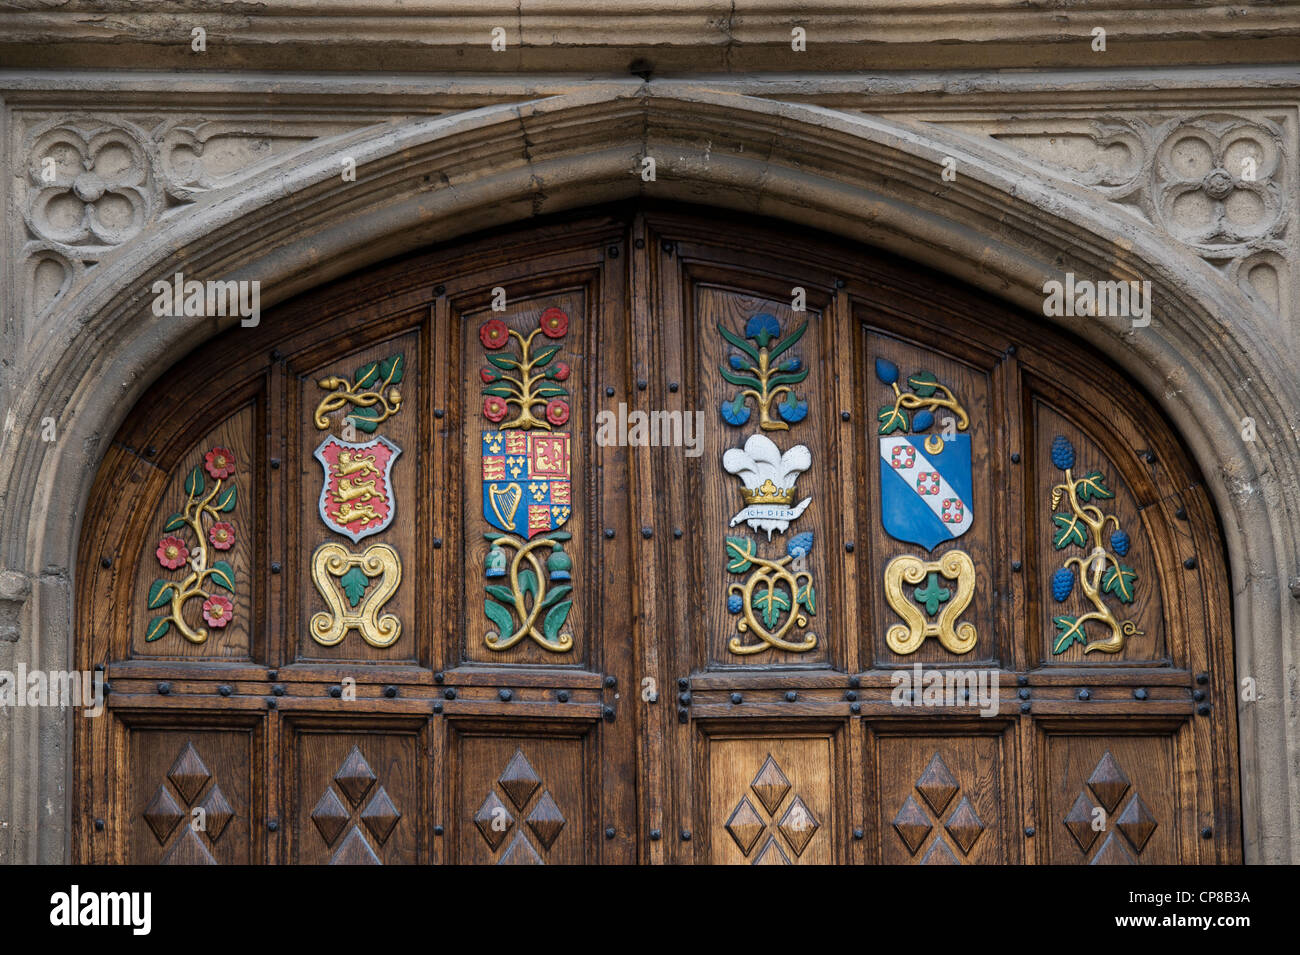 Oriel college, wooden doors / coat of arms carving details. Oxford, Oxfordshire, England - Stock Image